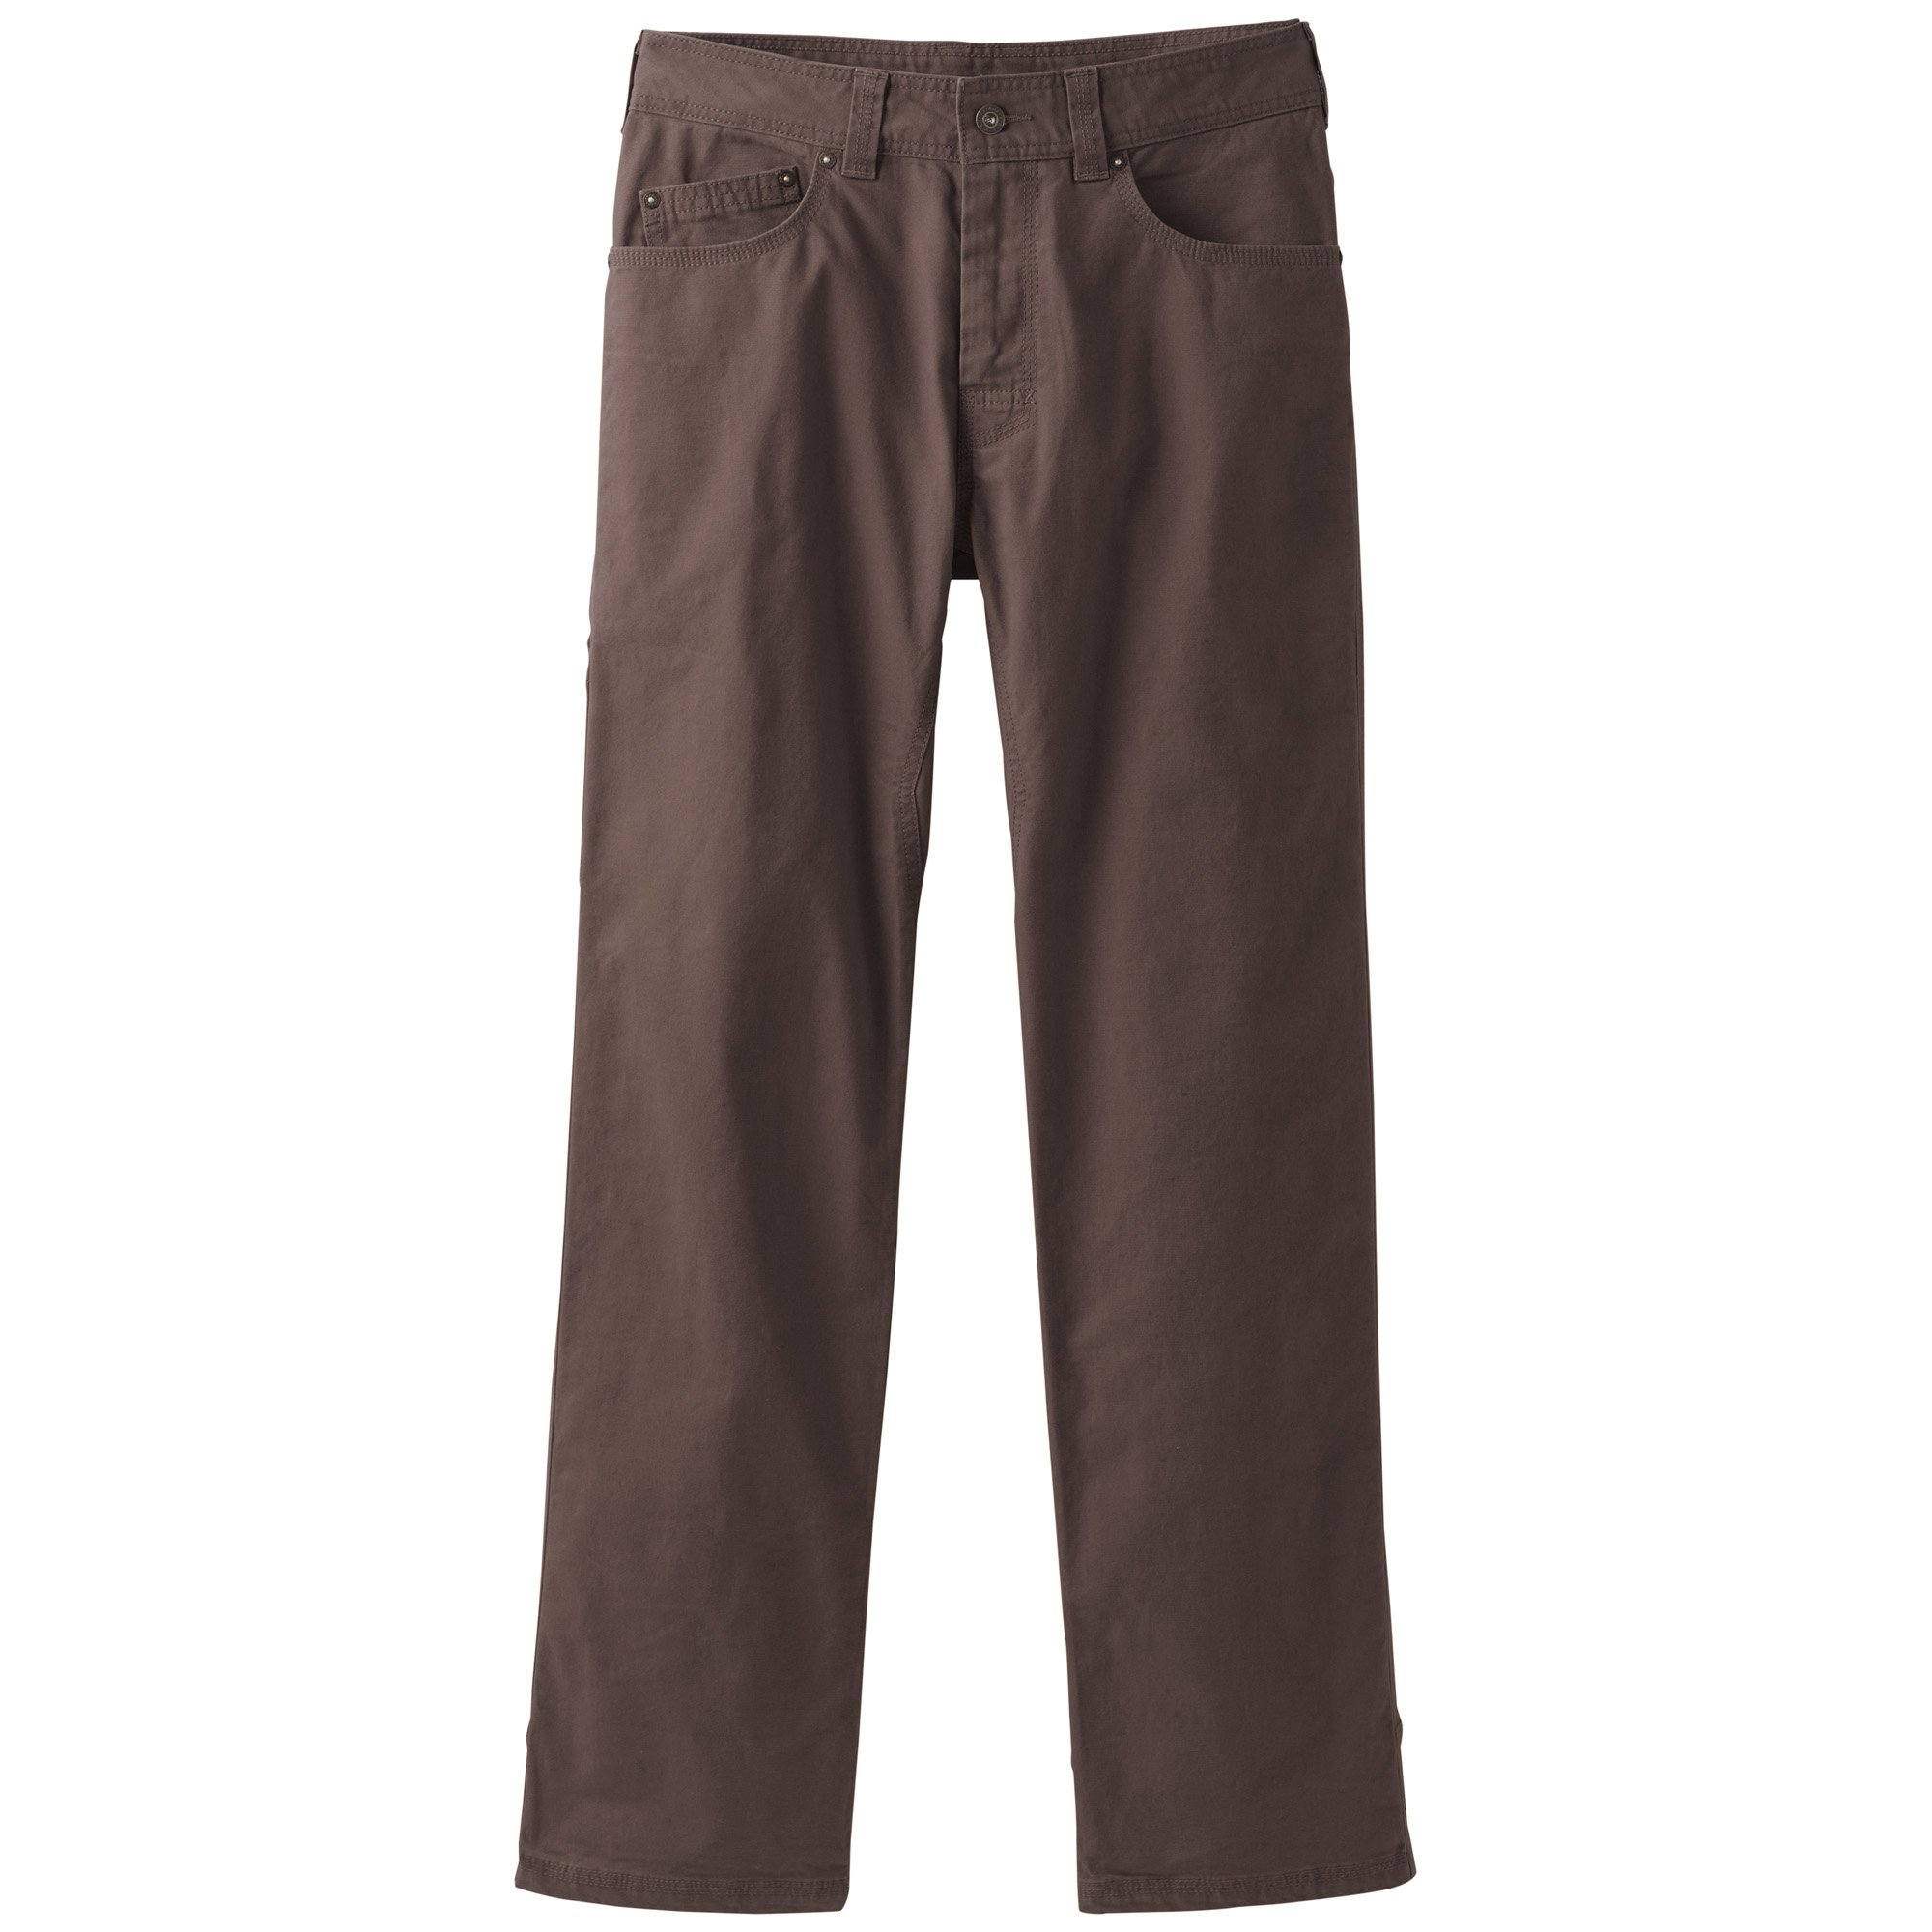 prAna Men's Bronson 32'''' Inseam Athletic Pants, Size 28, Acacia Brown